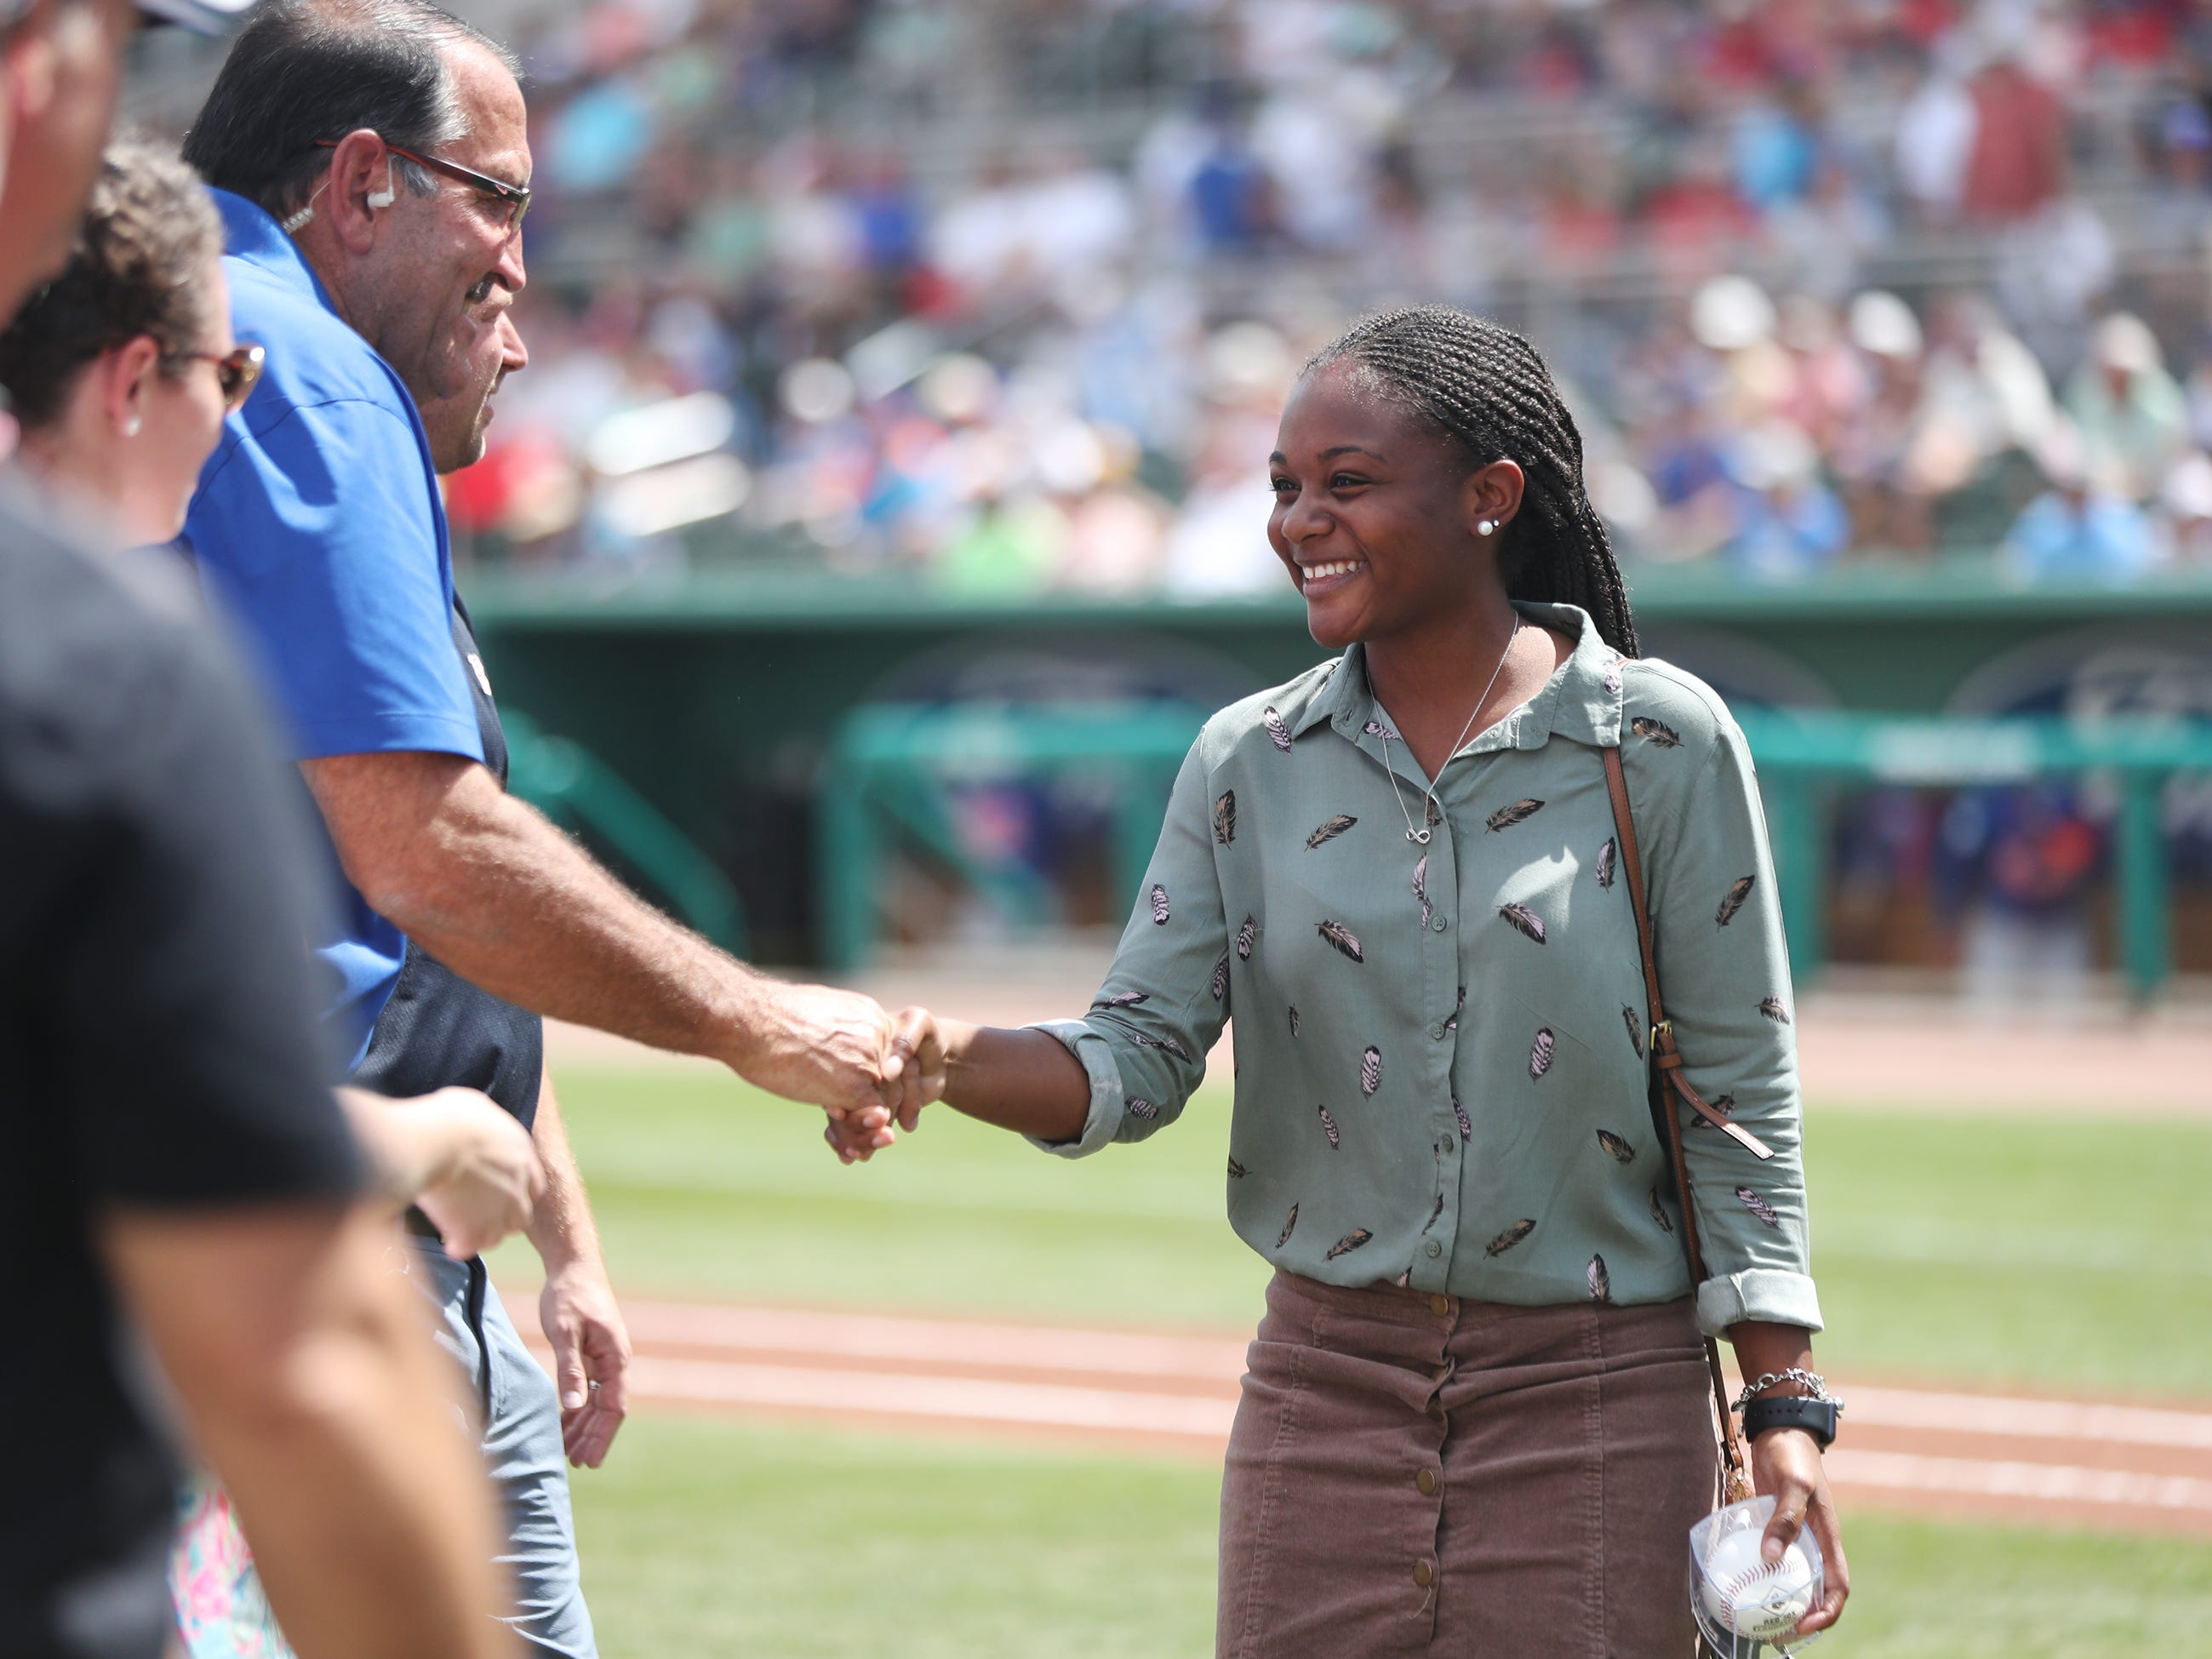 Dunbar High School's Kamari Walker was one of 13 Lee County public high school seniors that received a $5,000 scholarship from the Boston Red Sox Foundation on Saturday before the team's game against the New York Mets at JetBlue Park in Fort Myers. The students' academic achievements and community service efforts were the basis for the honor.